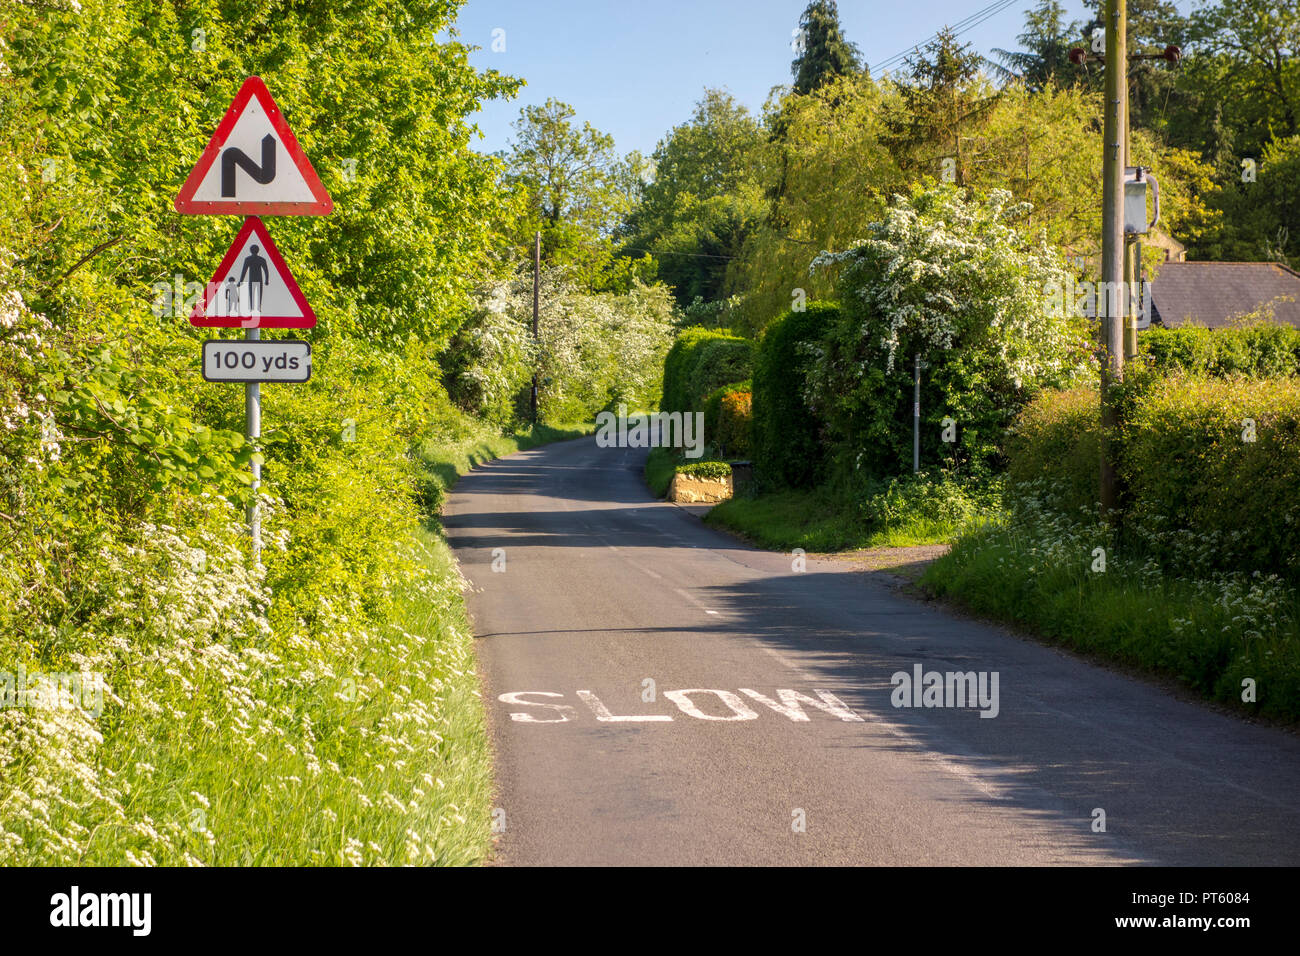 Warning triangle road signs for bends and pedestrians with slow sign on a British country lane, Sharpenhoe, UK - Stock Image